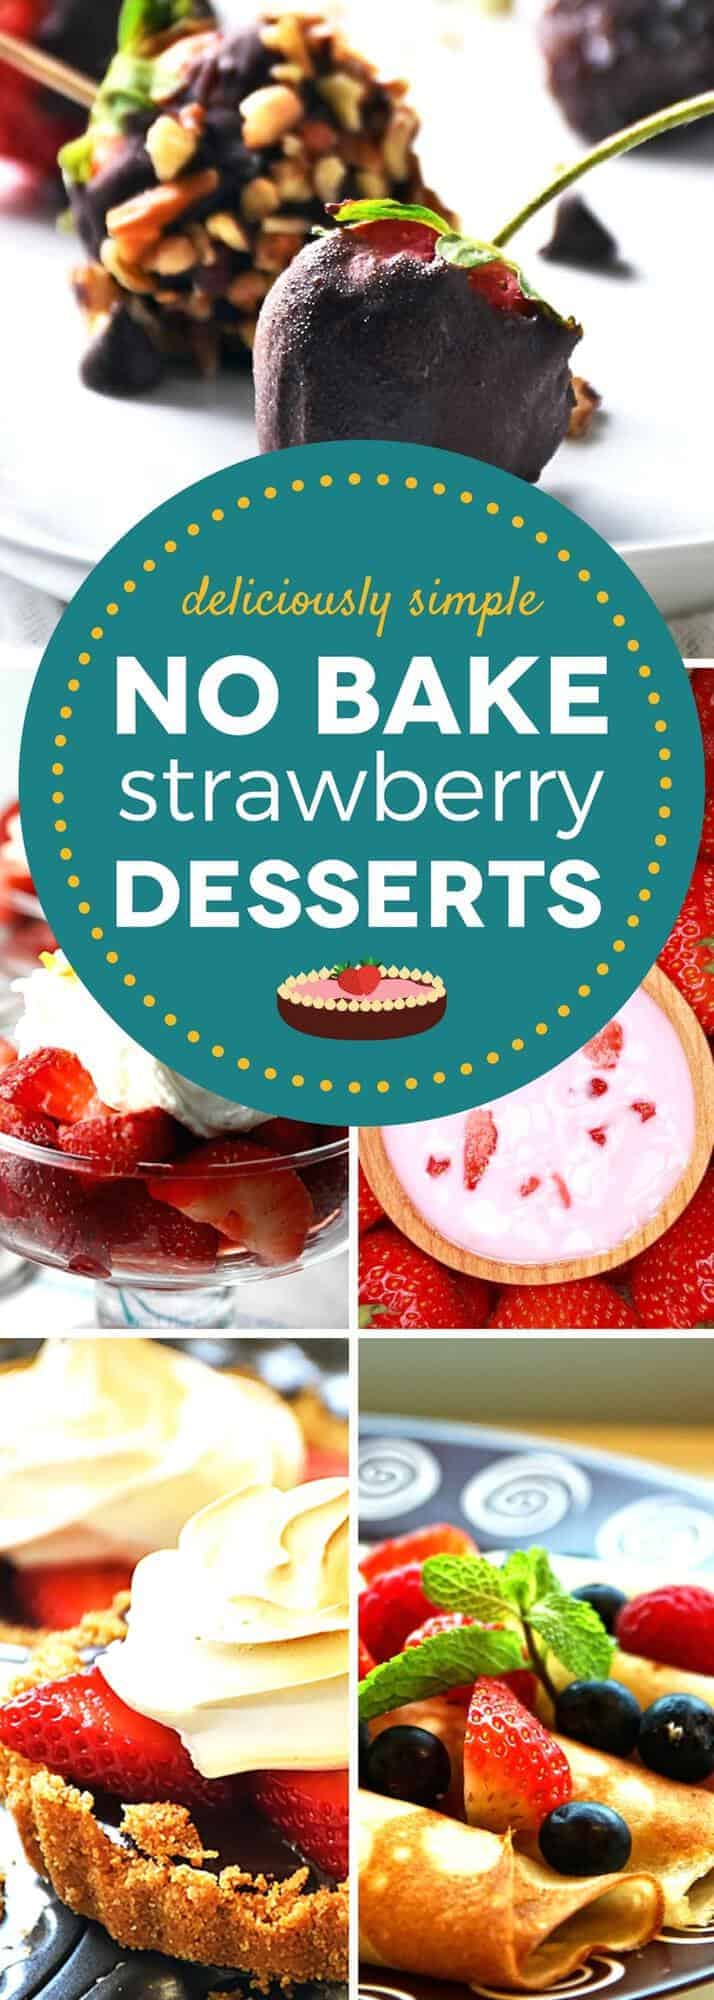 Fresh strawberries take the lead in these no bake strawberry desserts! From chocolate dipped strawberries and strawberry puddings to tart, pie, and cake recipes, these easy no bake dessert recipes prove that you don't need to turn on your oven to whip up an amazing dessert. #SundaySupper #nobake #strawberryrecipes #dessertrecipes #nobakedesserts